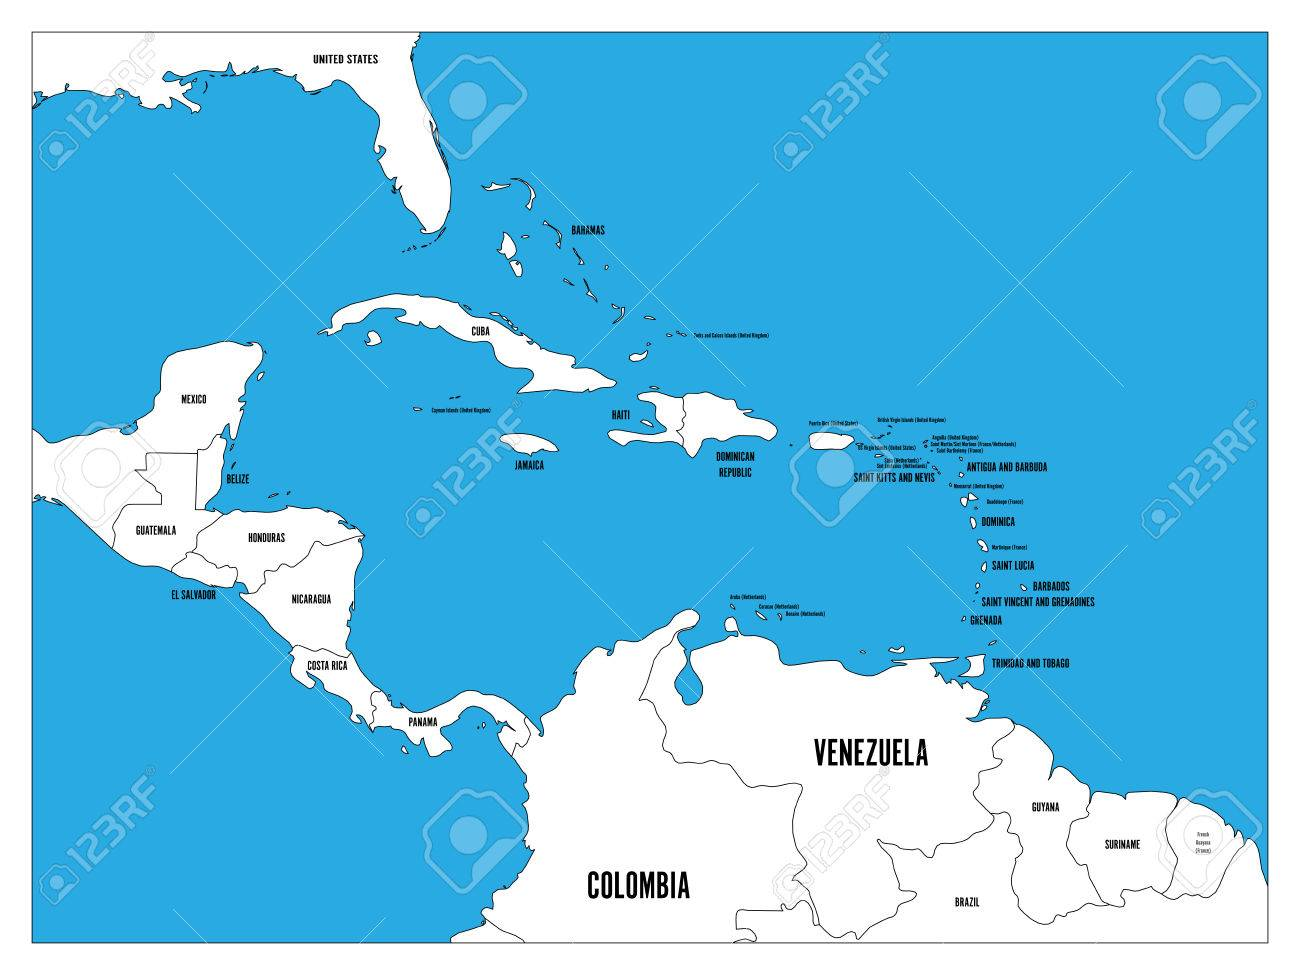 Central america and carribean states political map black outline central america and carribean states political map black outline borders with black country names labels gumiabroncs Images